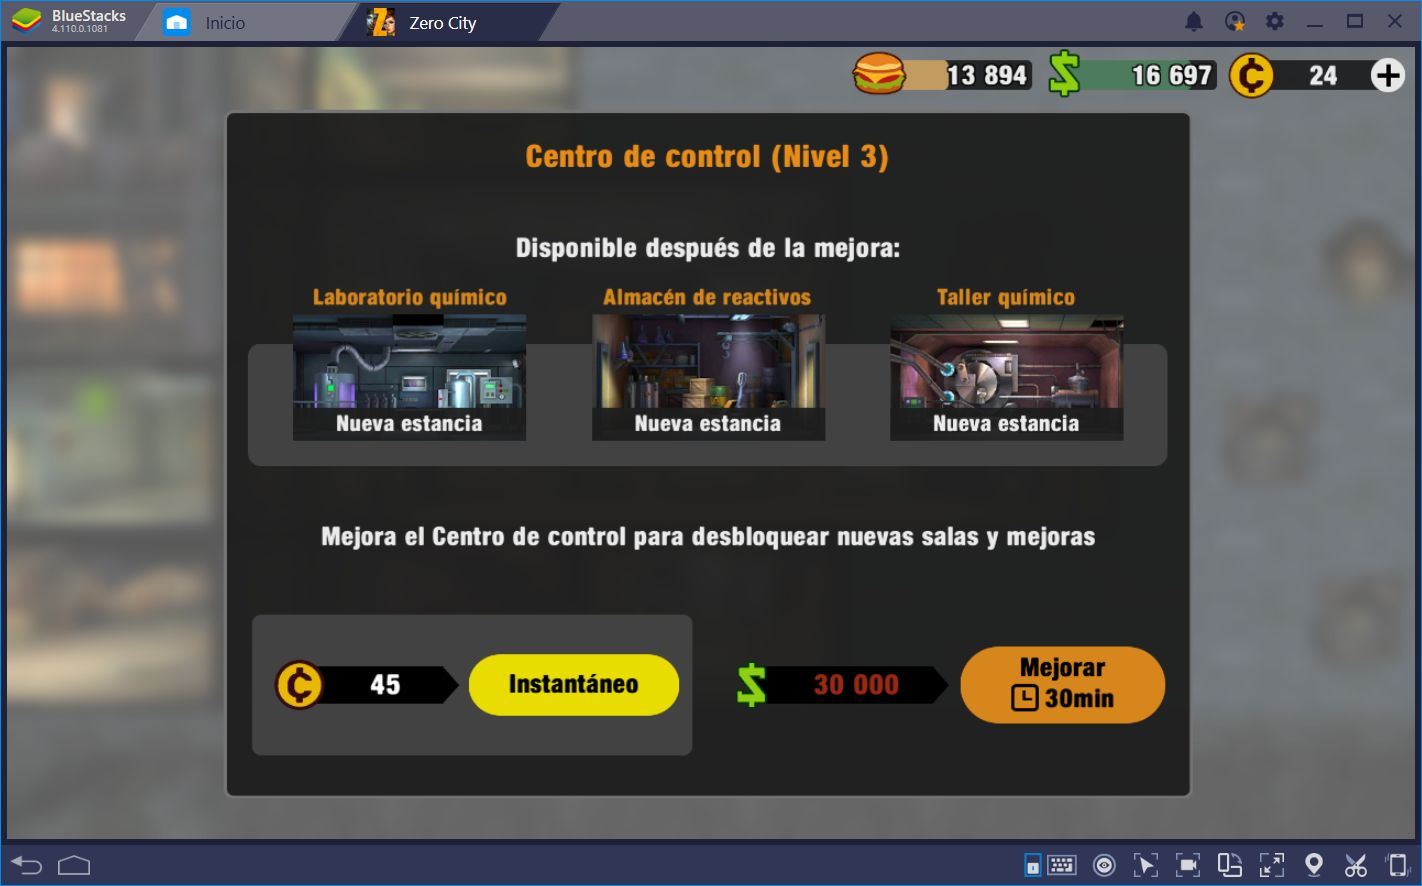 Enfrenta el Apocalipsis Zombi en Zero City con BlueStacks